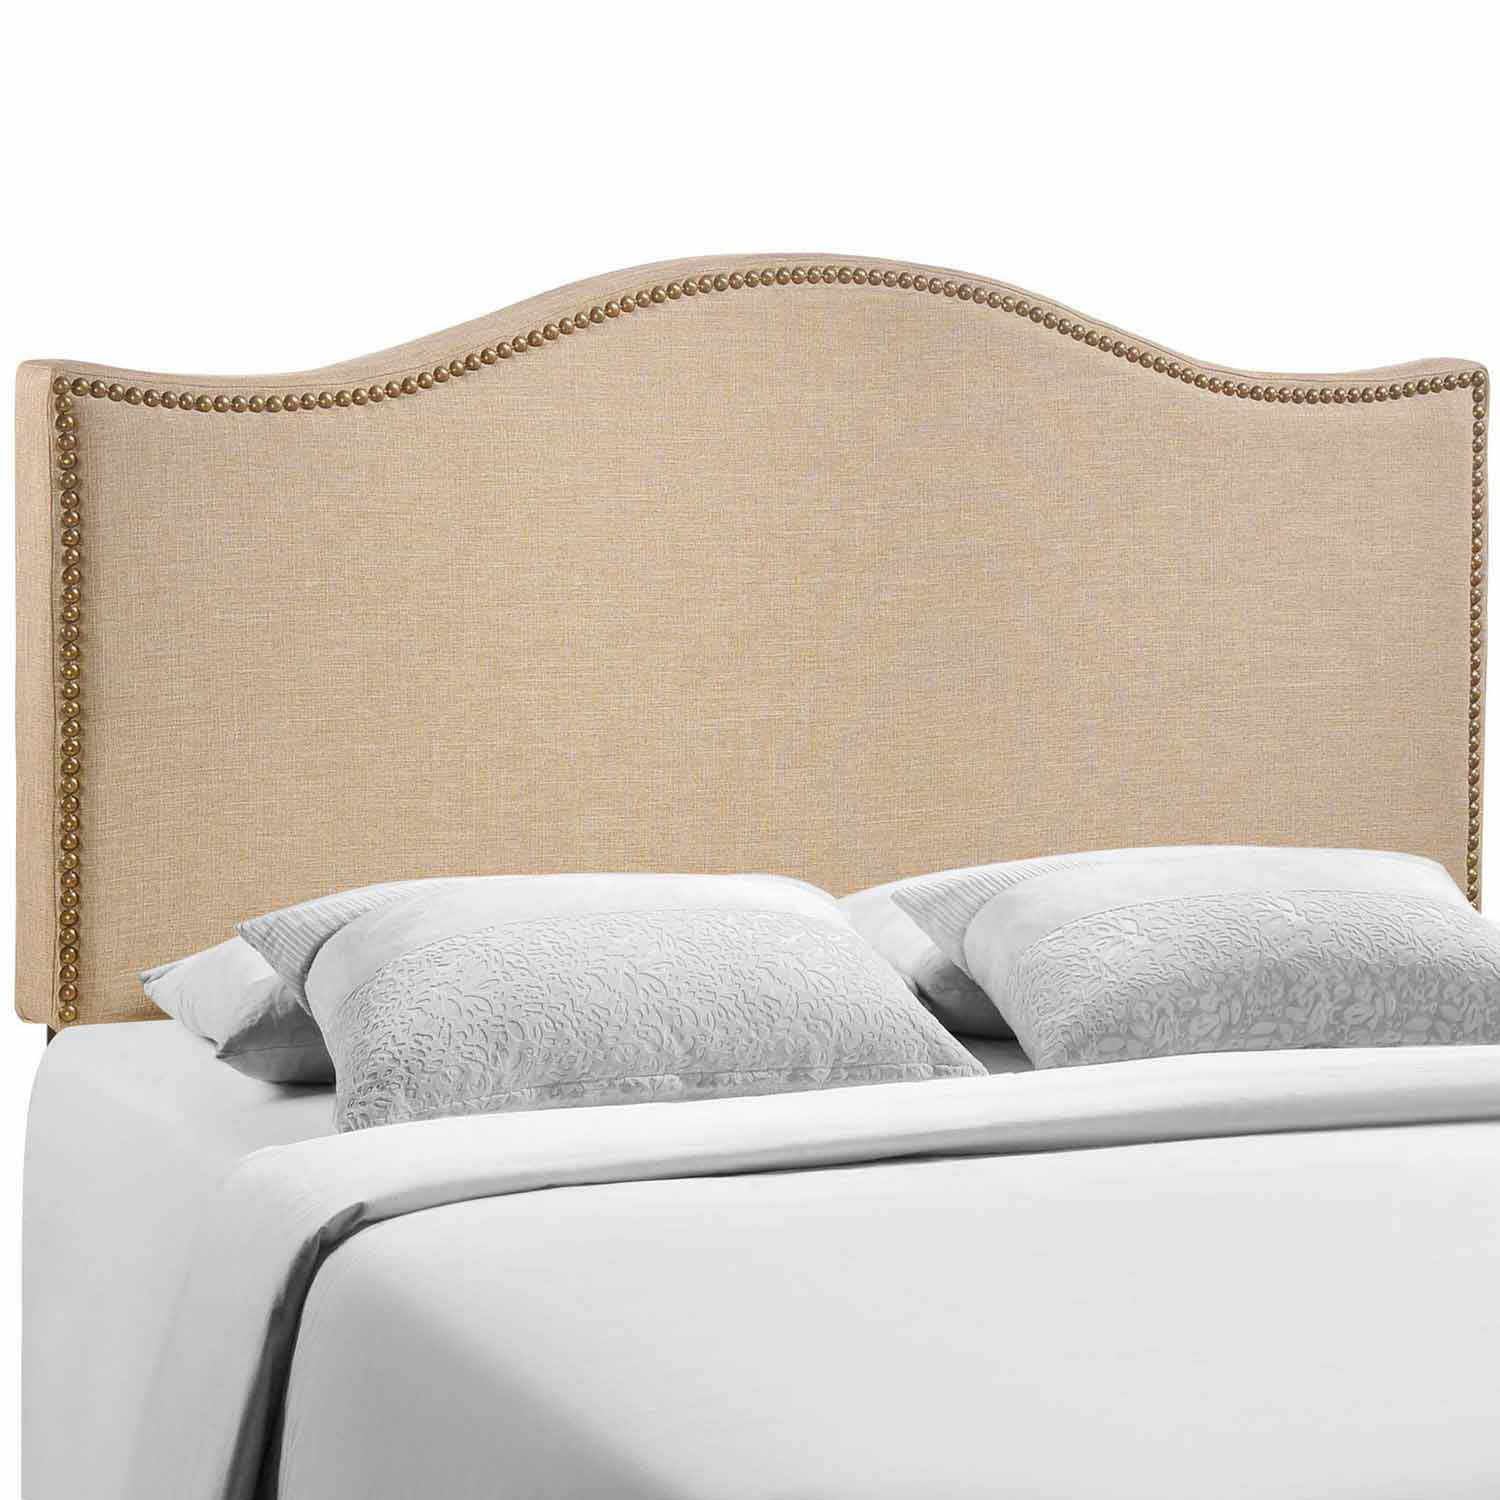 Modway Curl Queen Nailhead Upholstered Headboard - Cafe